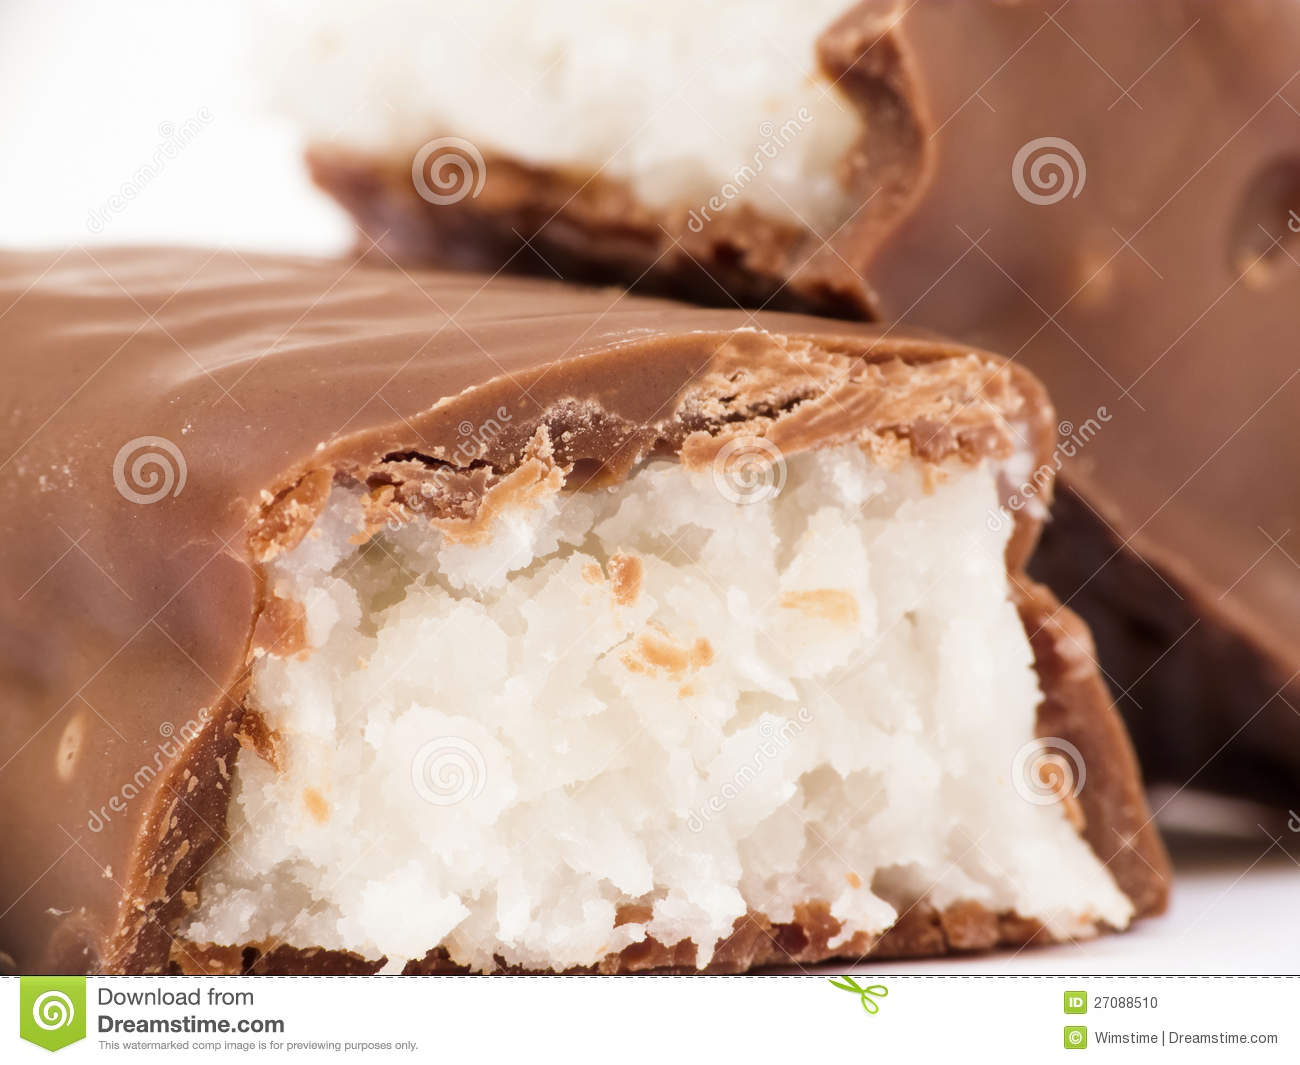 Chocolate Bar With Coconut Filling Macro Stock Photo - Image: 27088510